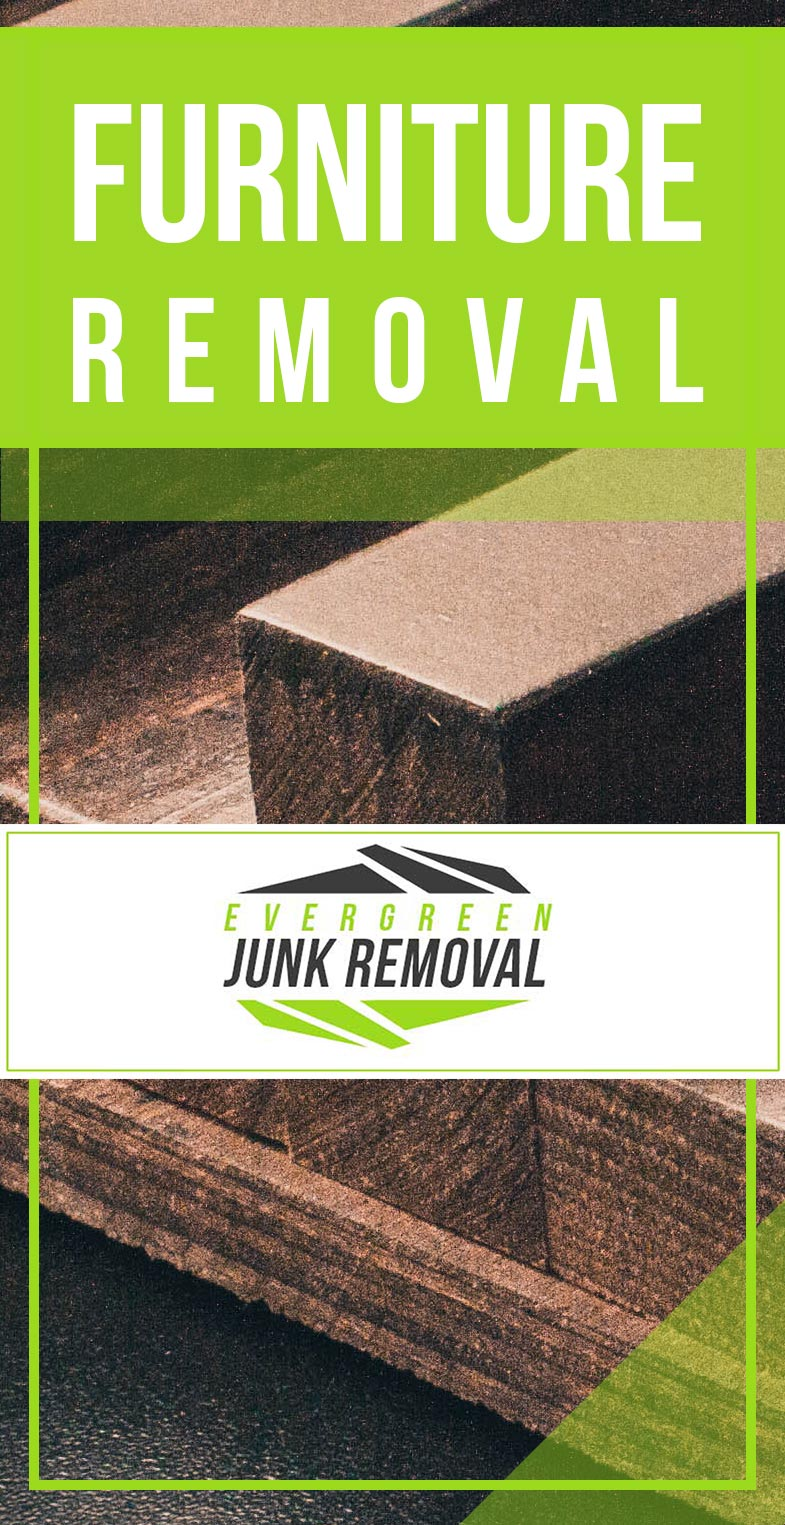 Imperial Beach Furniture Removal